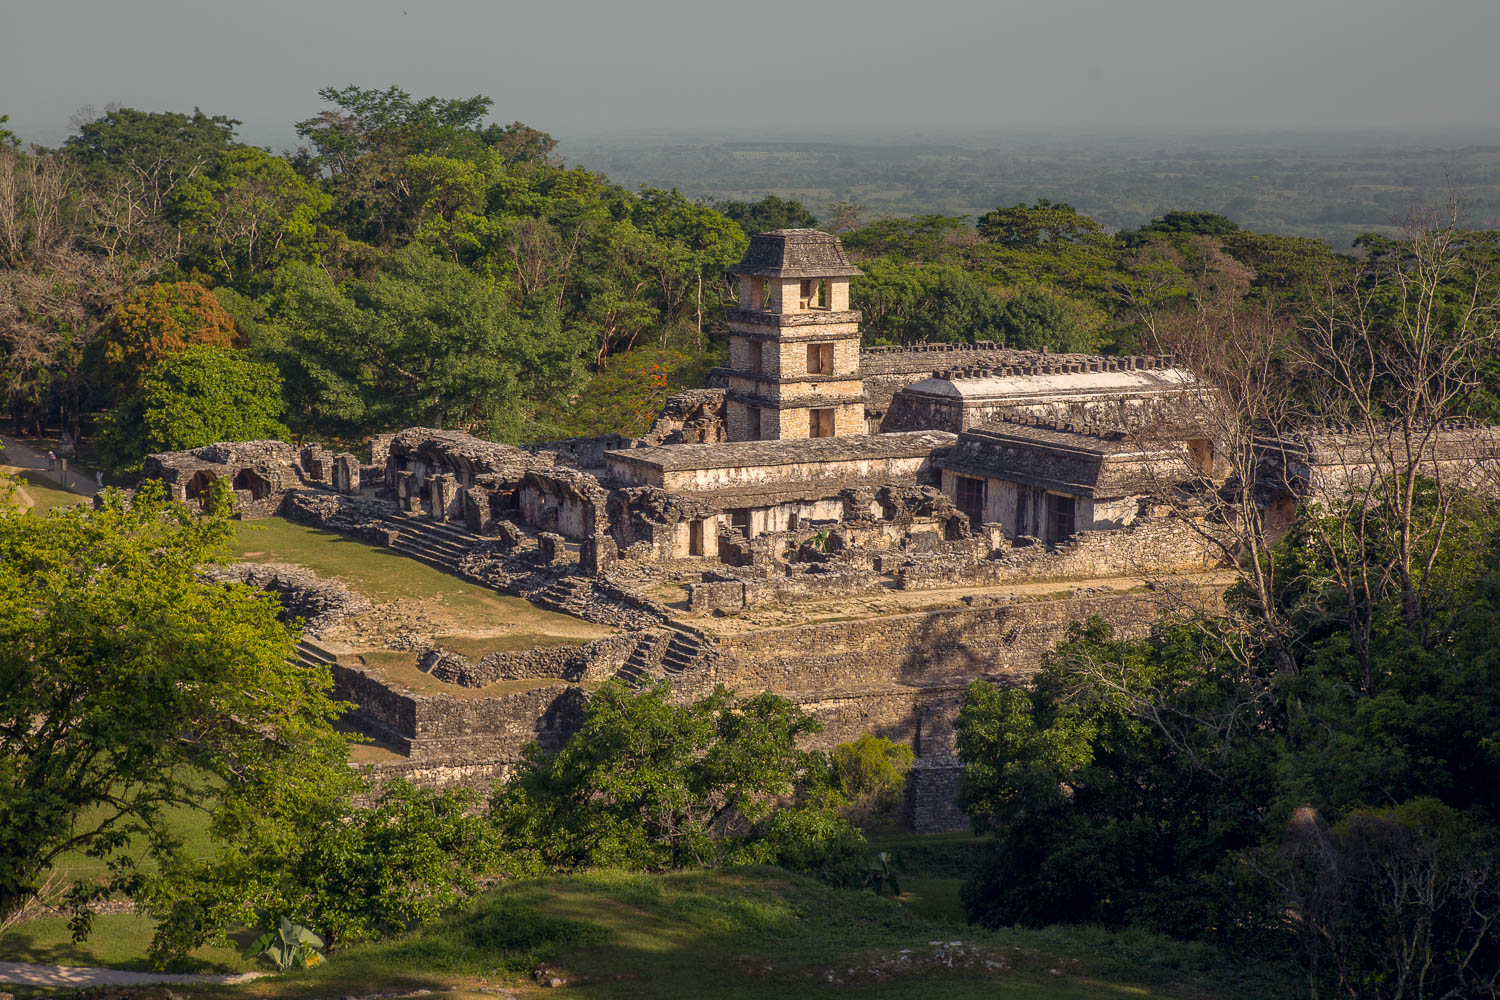 The Palace at Palenque.